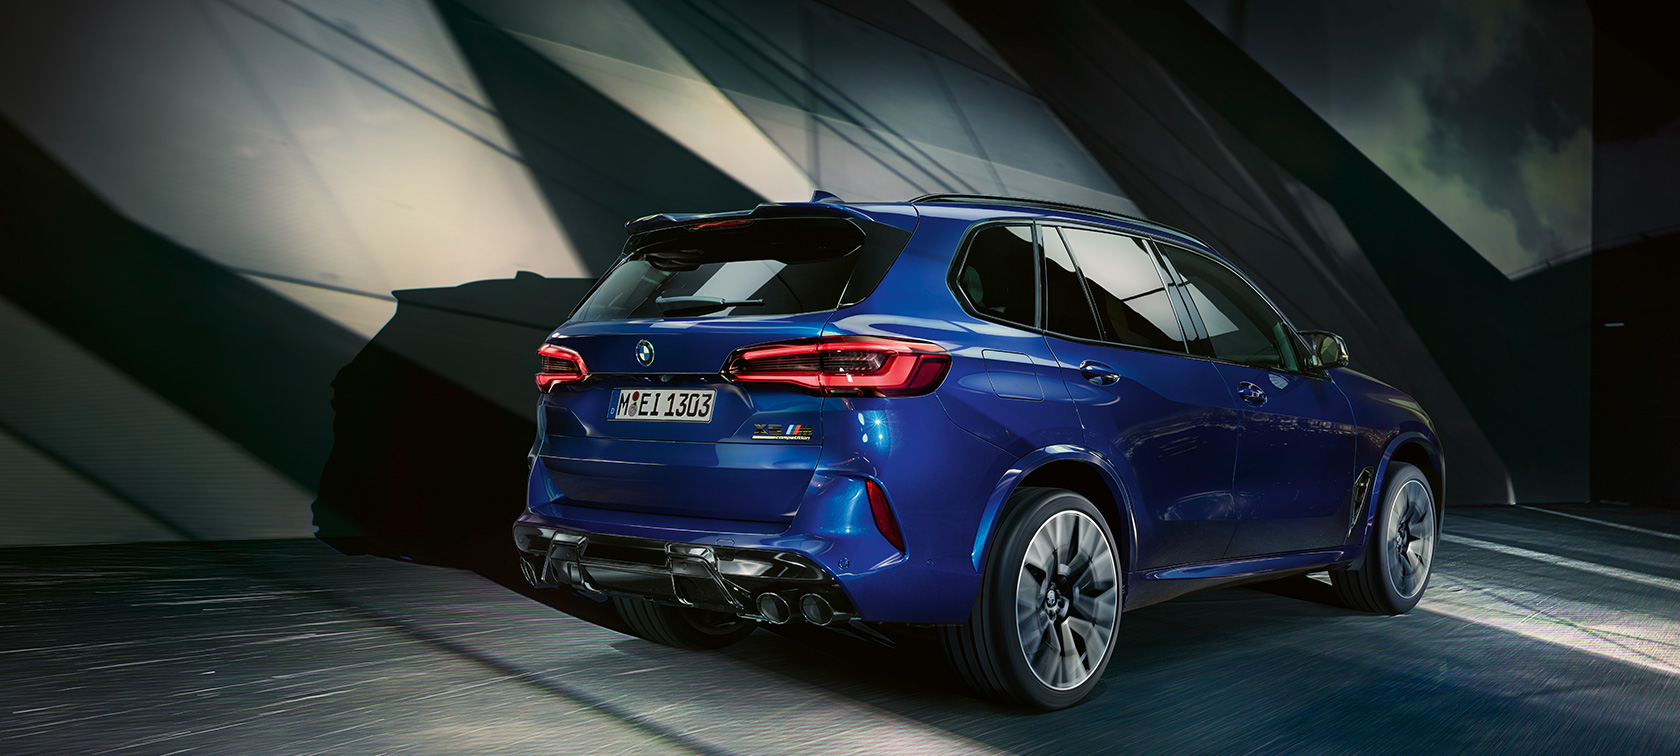 BMW X5 M Competition F95 2020 Marina Bay blue metallic three-quarter rear view